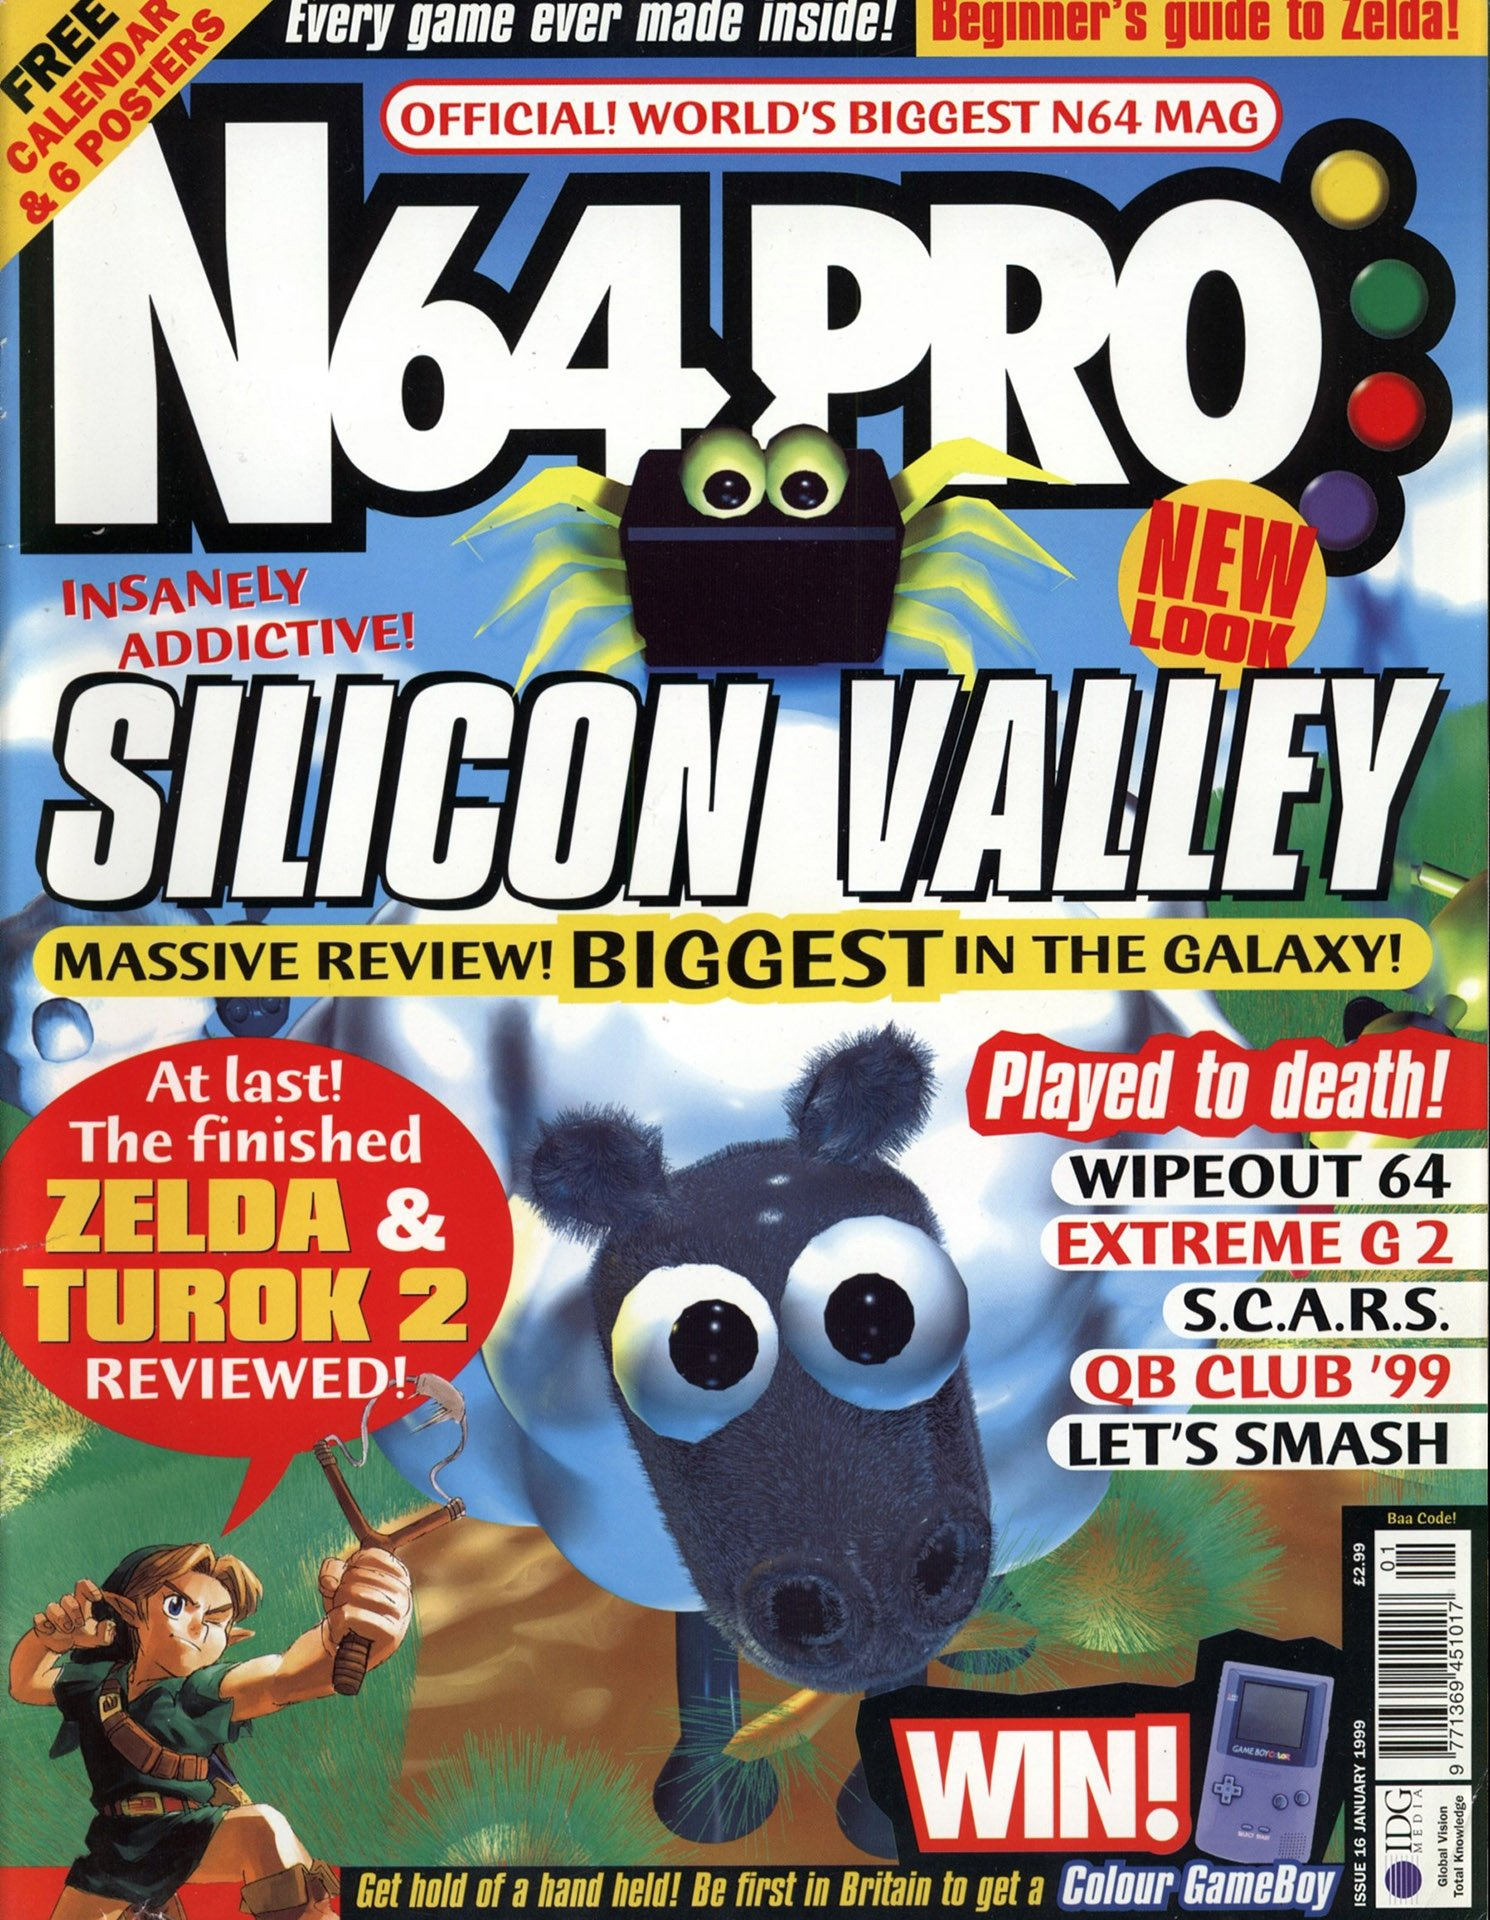 N64 Pro Issue 16 (January 1999)